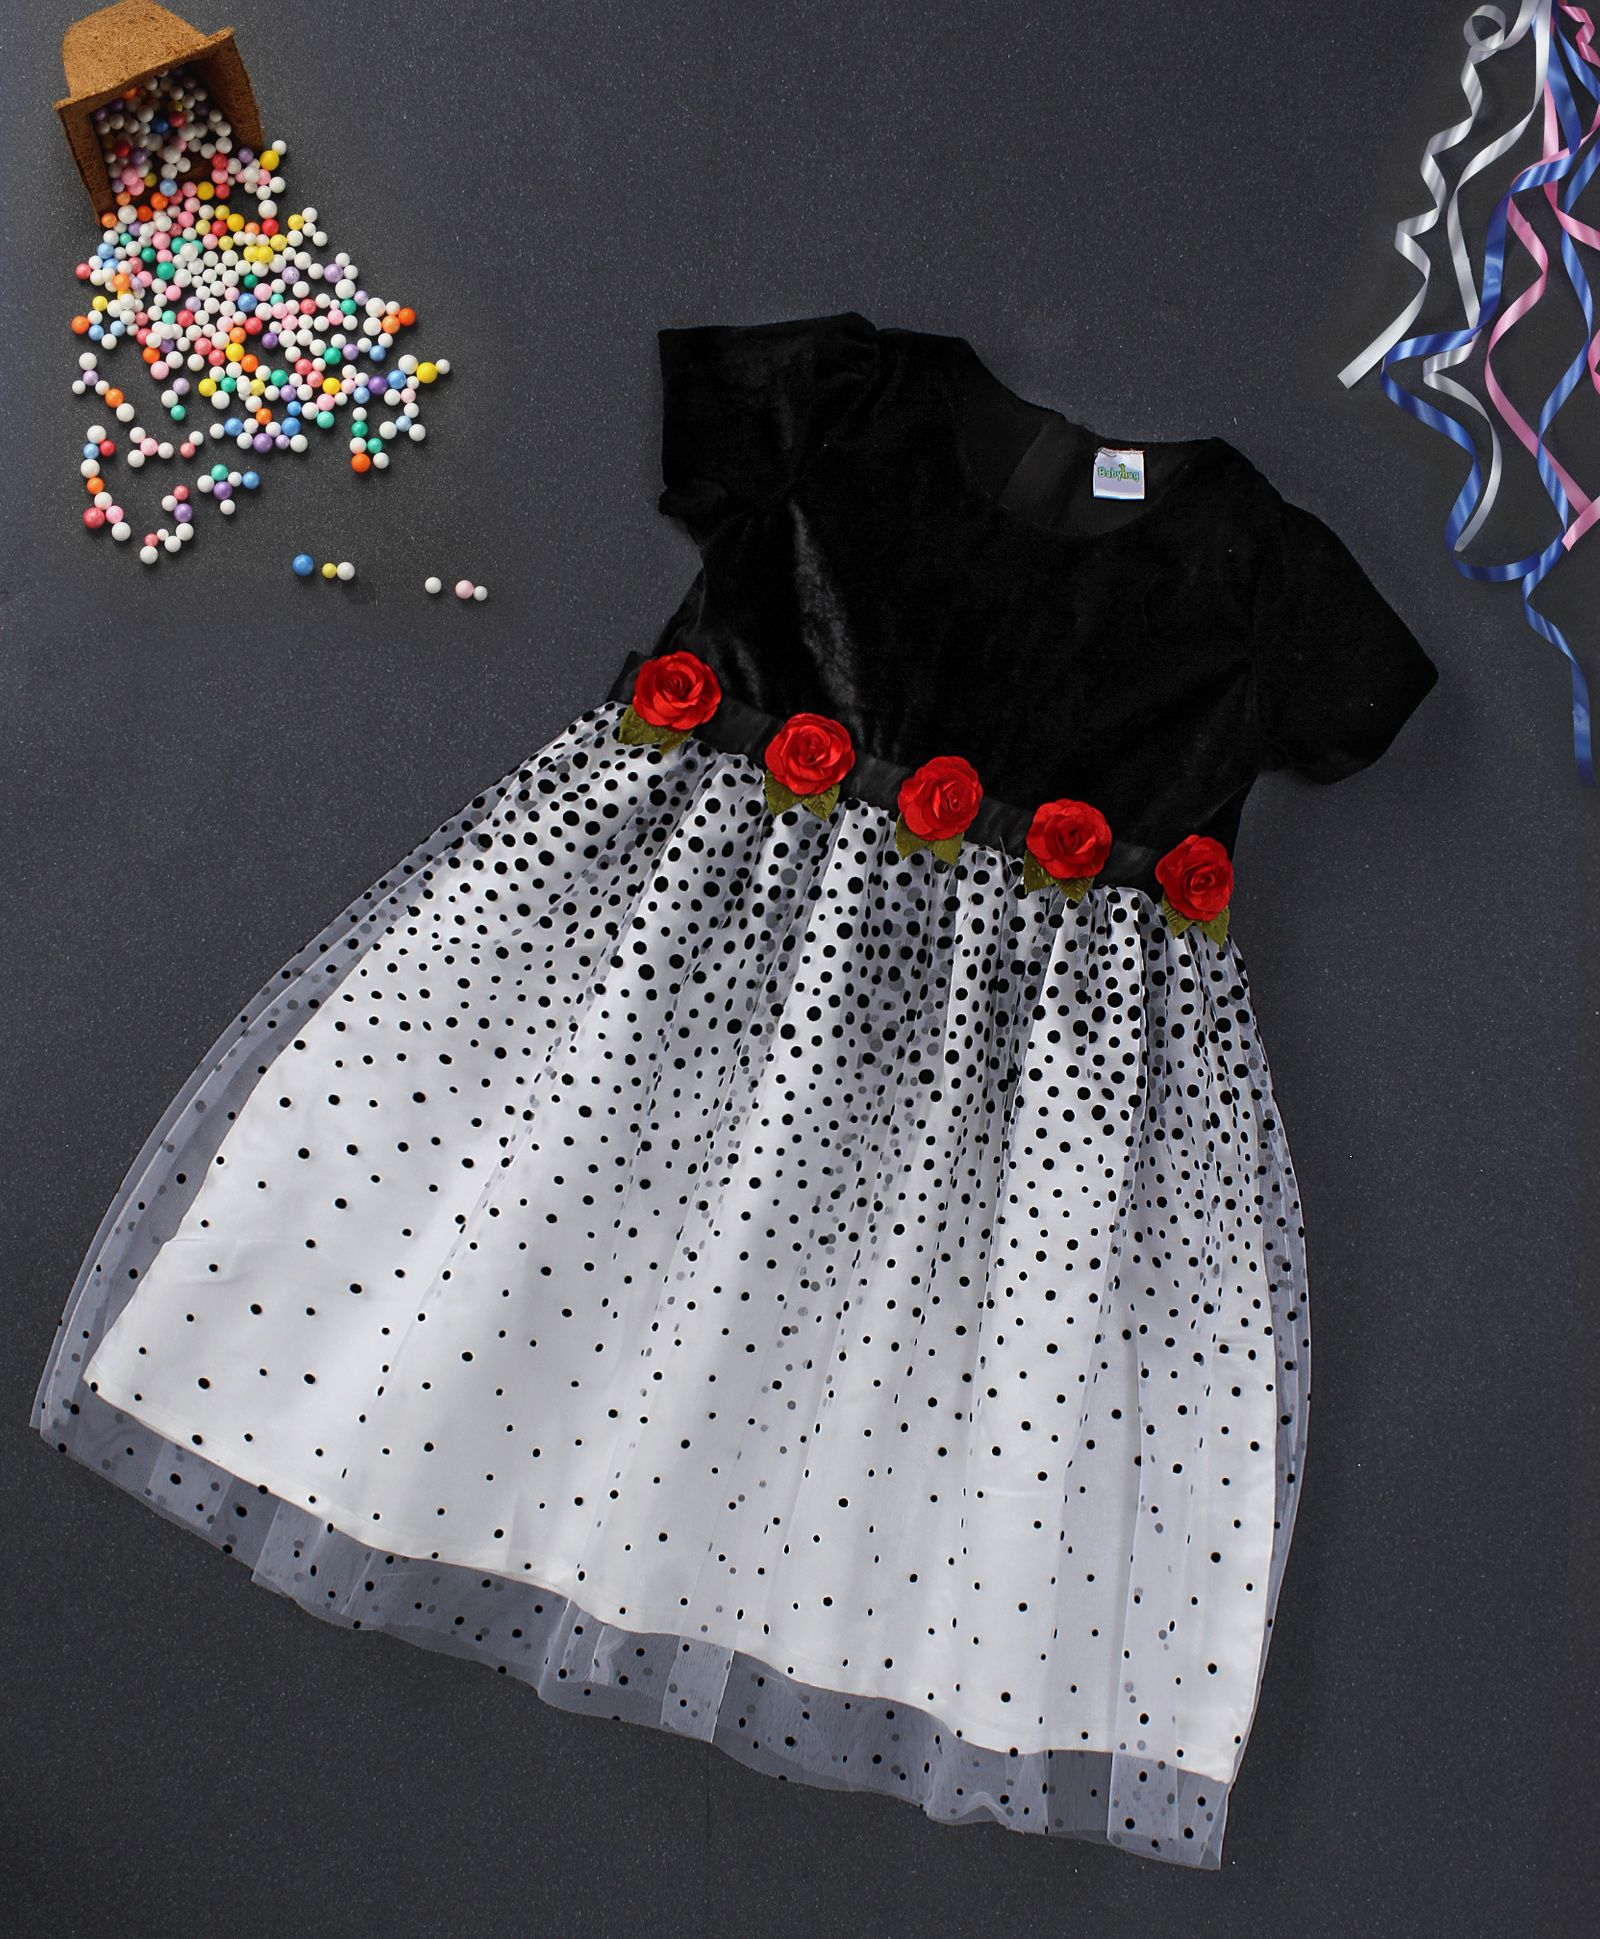 62338128dbe Babyhug Black   White Party Wear Frock With Floral Appliques  White  Floral   Frocks  Party  GirlsFashion